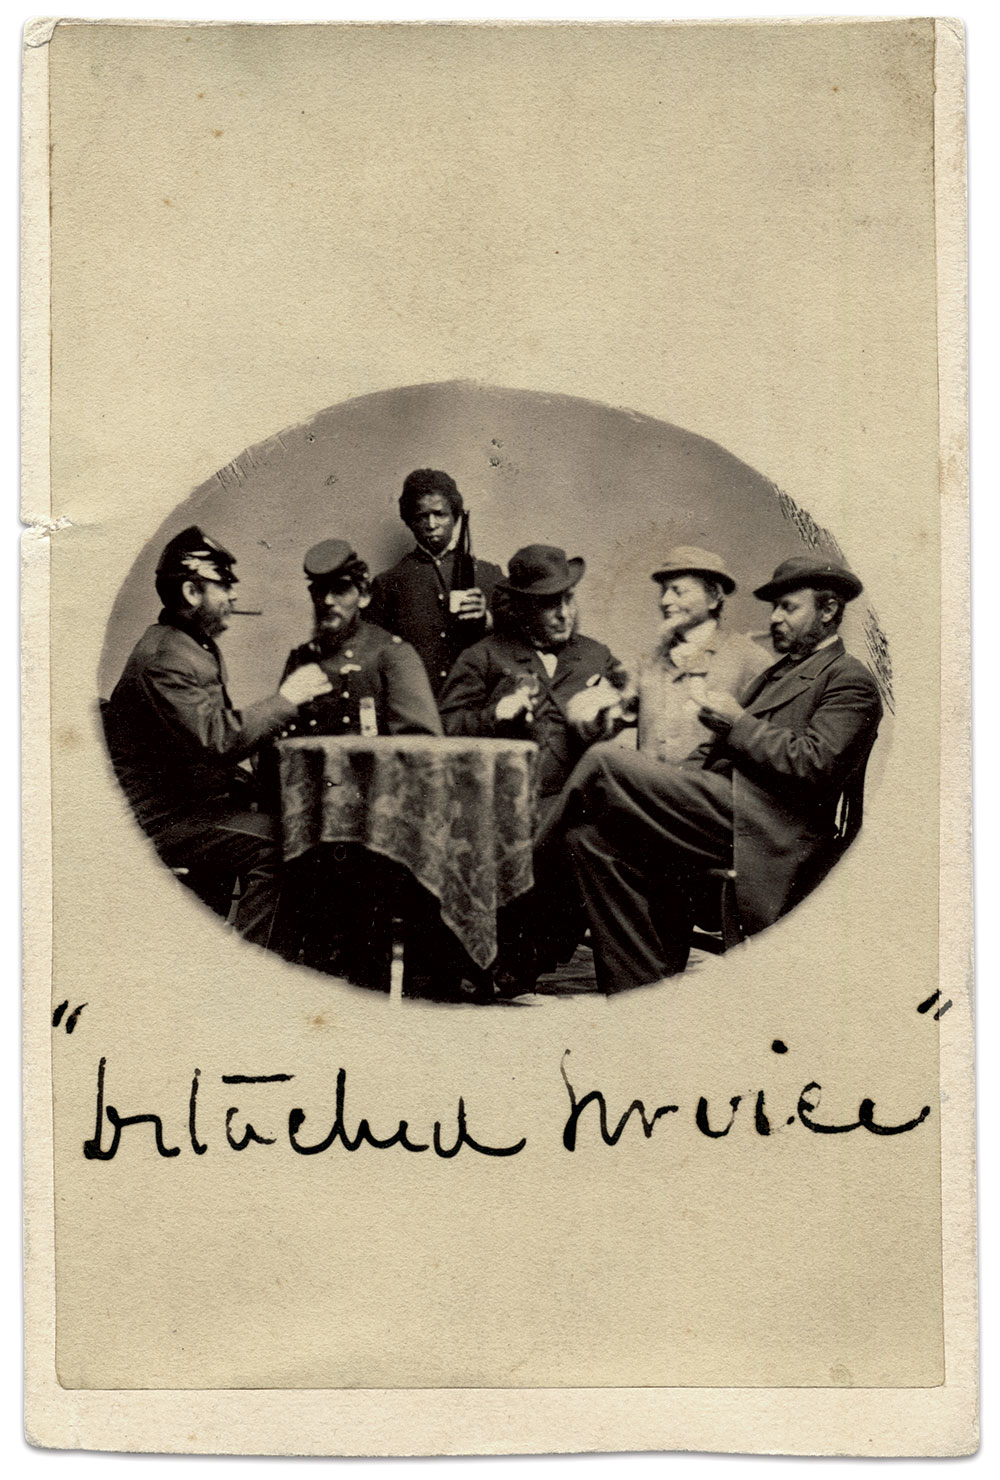 Carte de visite by Patterson and Radbruch of Milwaukee, Wis. Doug York Collection.